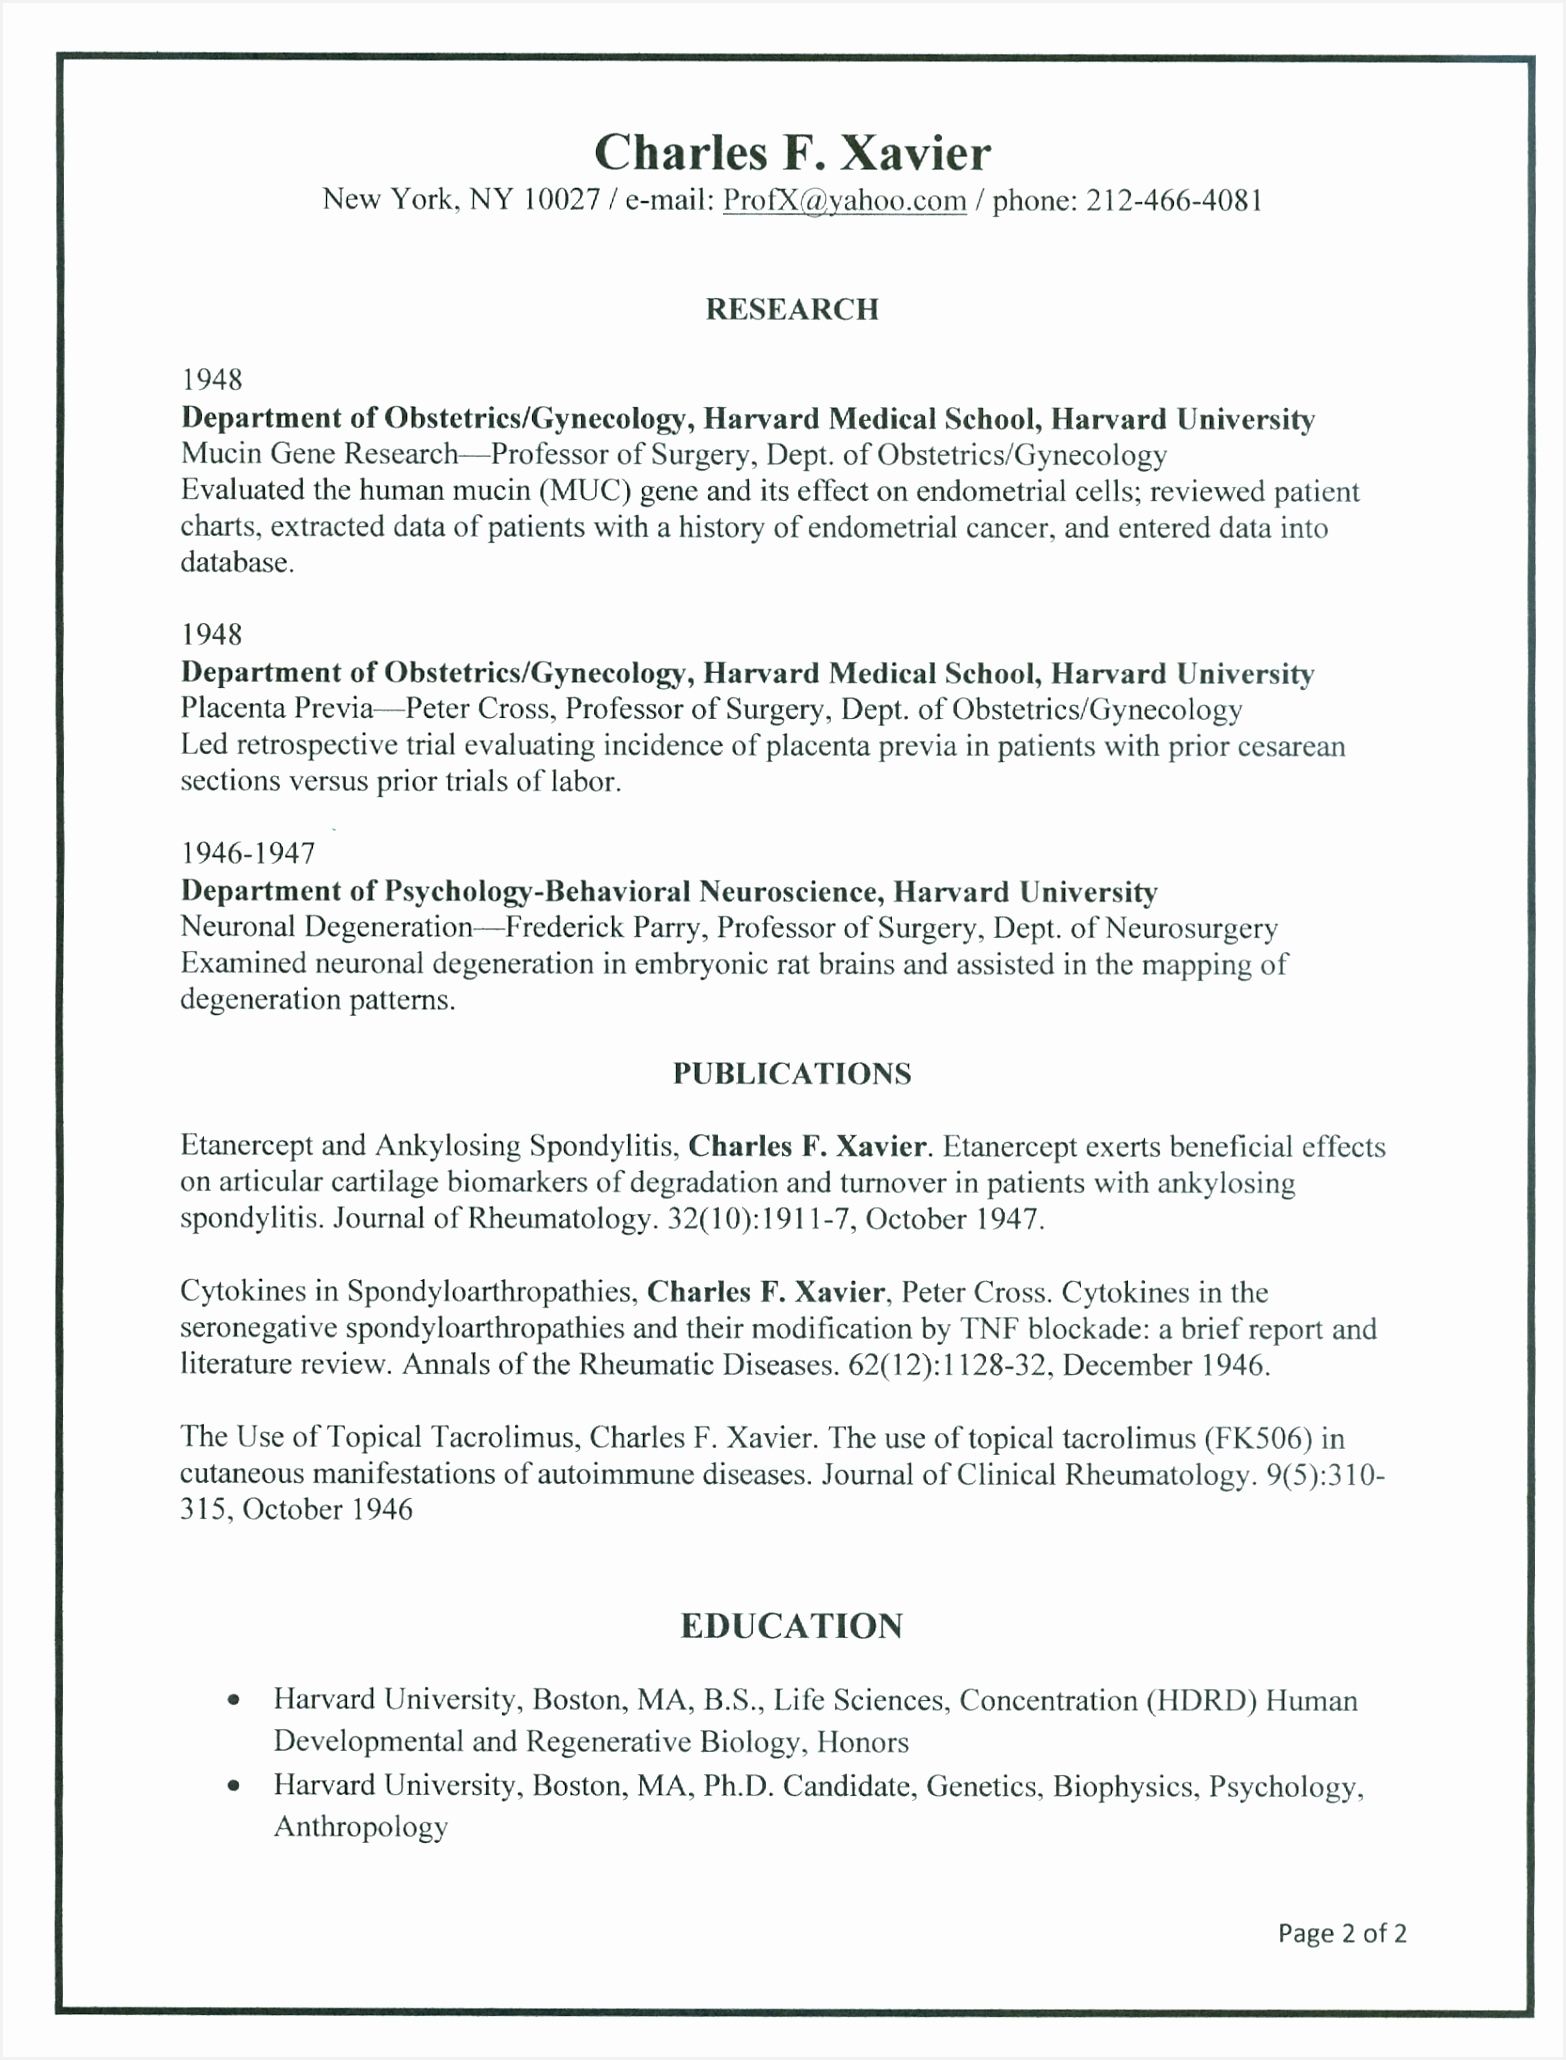 Database Specialist Sample Resume Cadzf Unique High School Resume Summary Unique New Resume Template Free Word New20601566